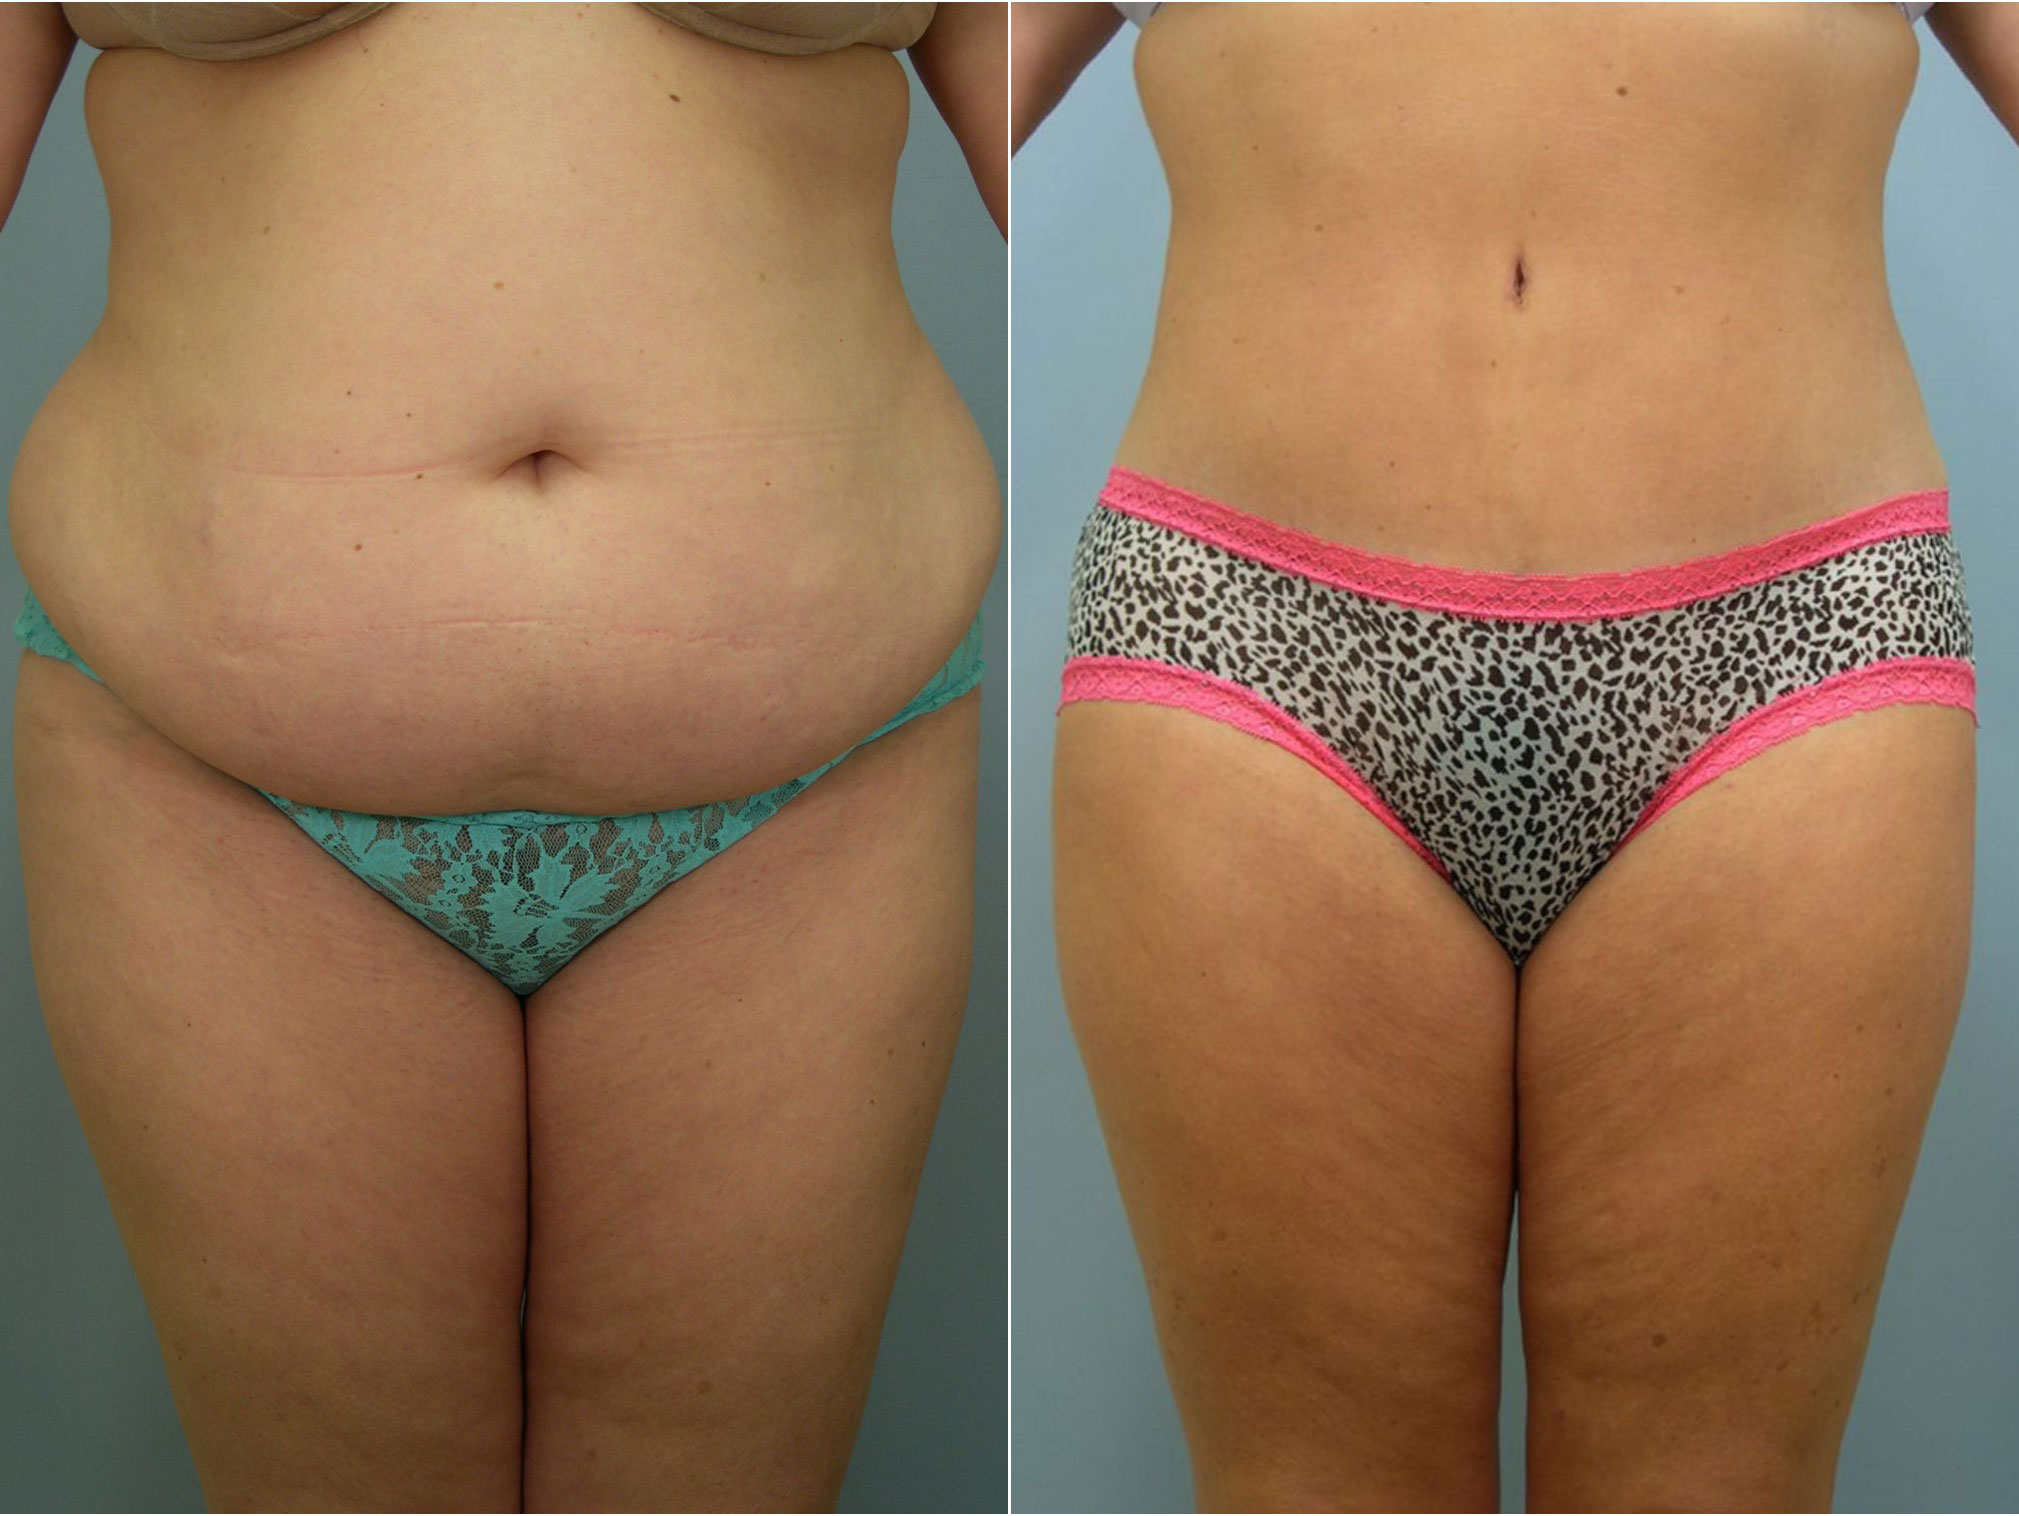 Closeup of female's midsection before and after tummy tuck surgery with extensive sculpting of the abdomen and flanks